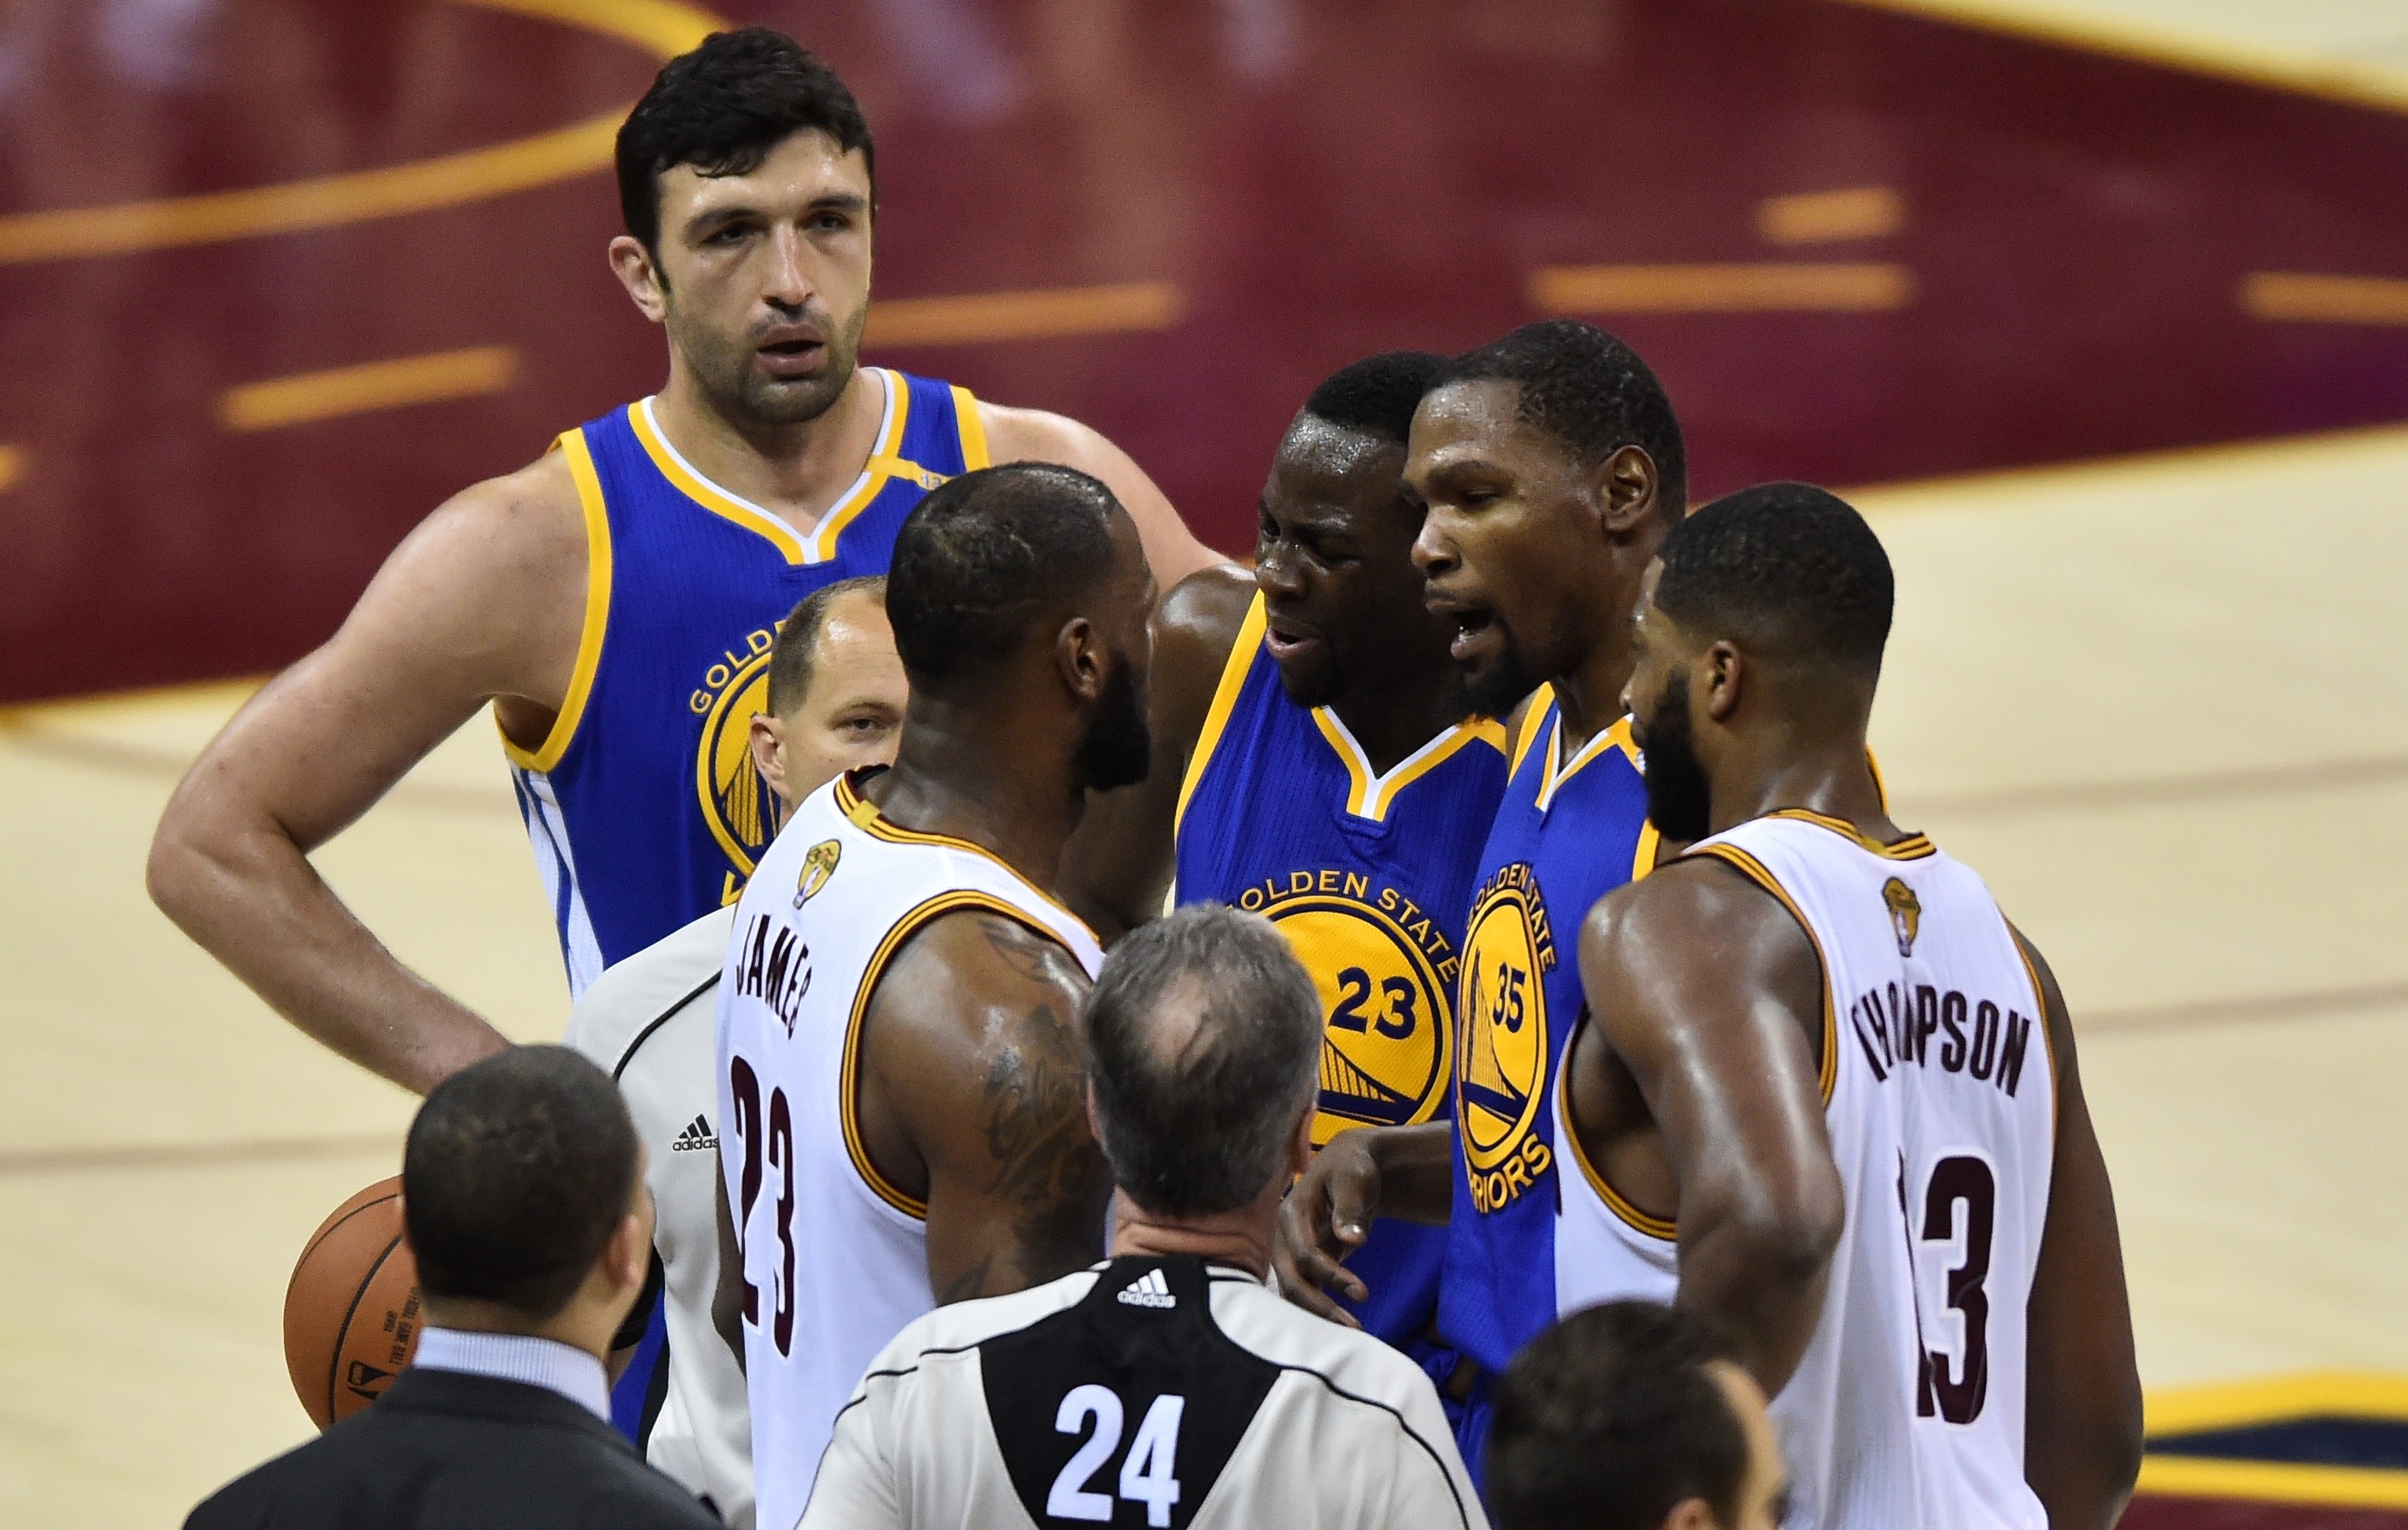 d066b0726a7 nydailynews.com Cavs avoid getting swept by Warriors in chippy game 4